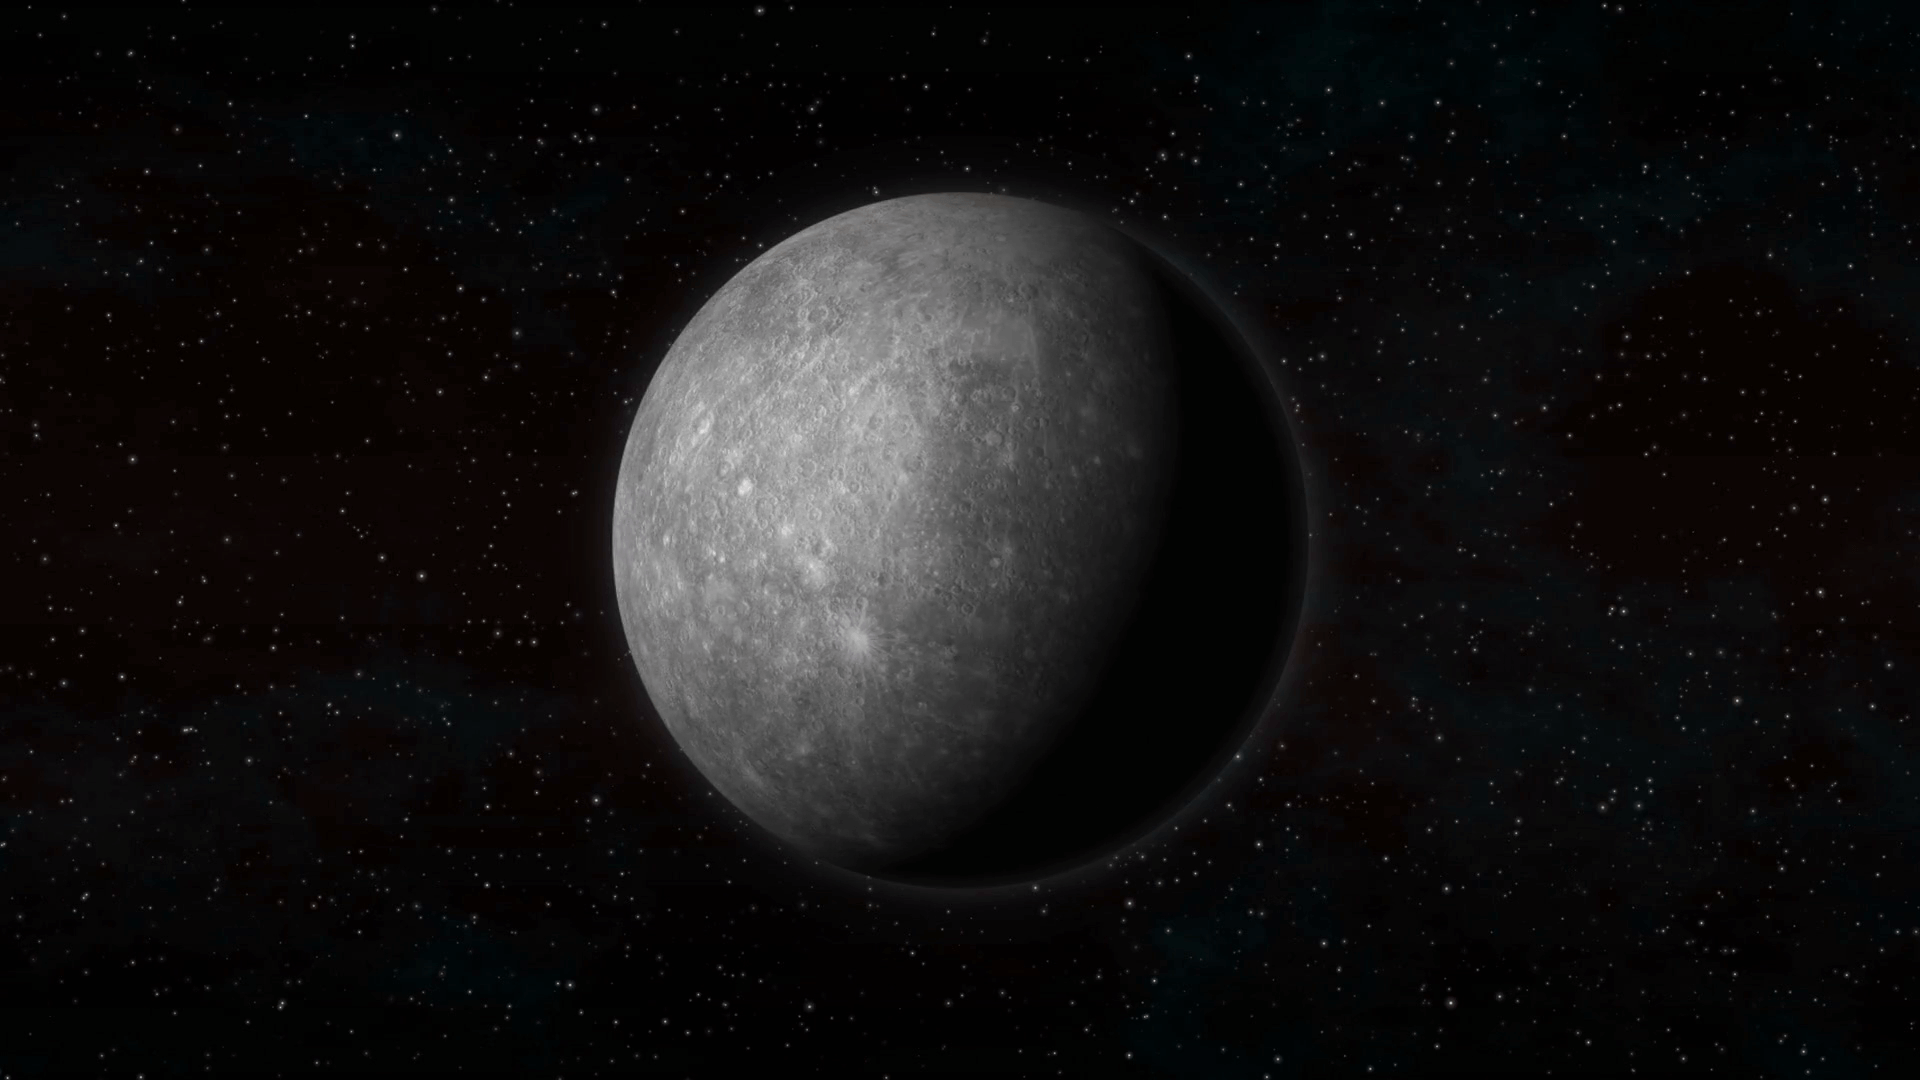 Planet Mercury in space